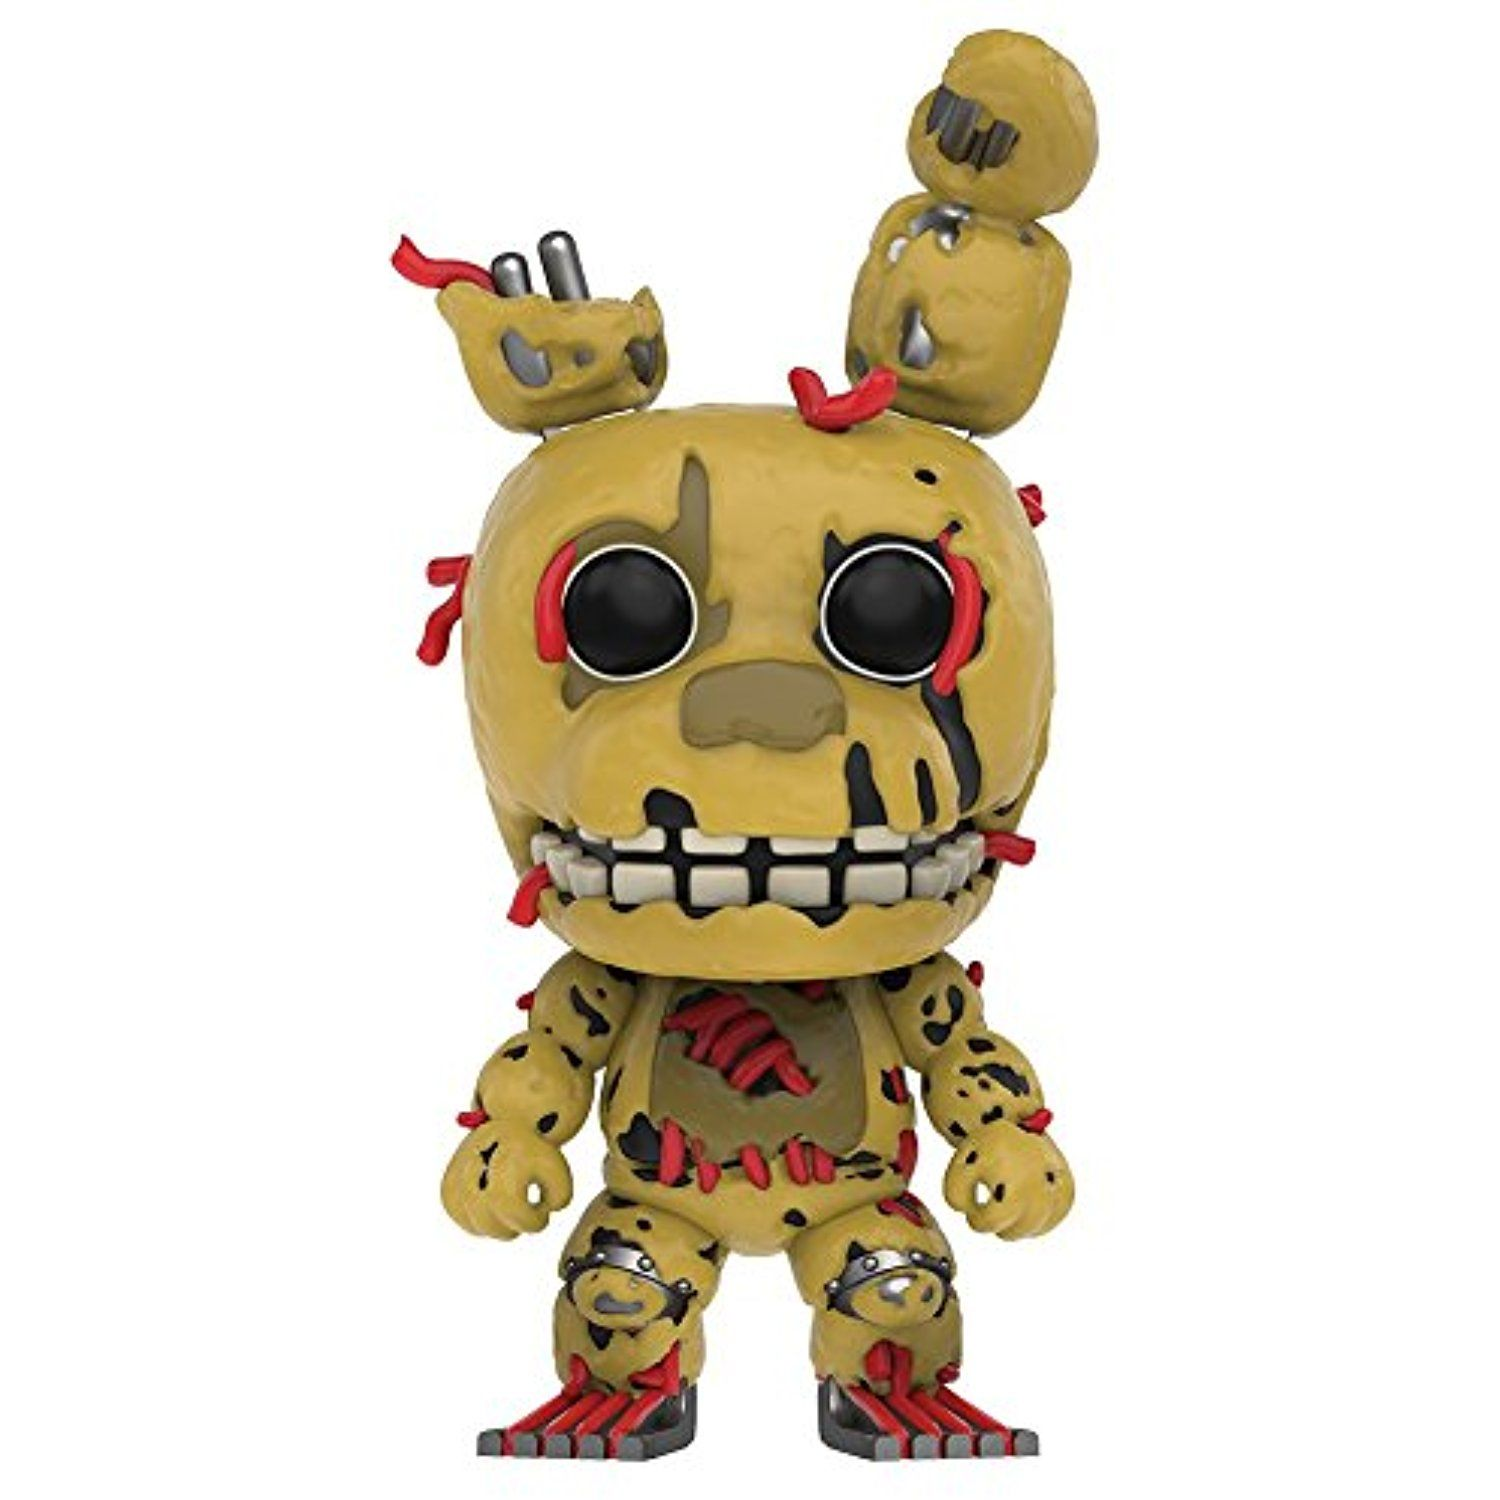 Funko Five Nights at Freddys Spring Trap Toy Figure 11033 Accessory Toys /& Games Miscellaneous Spring Trap Toy Figure Funko Five Nights at Freddy/'s